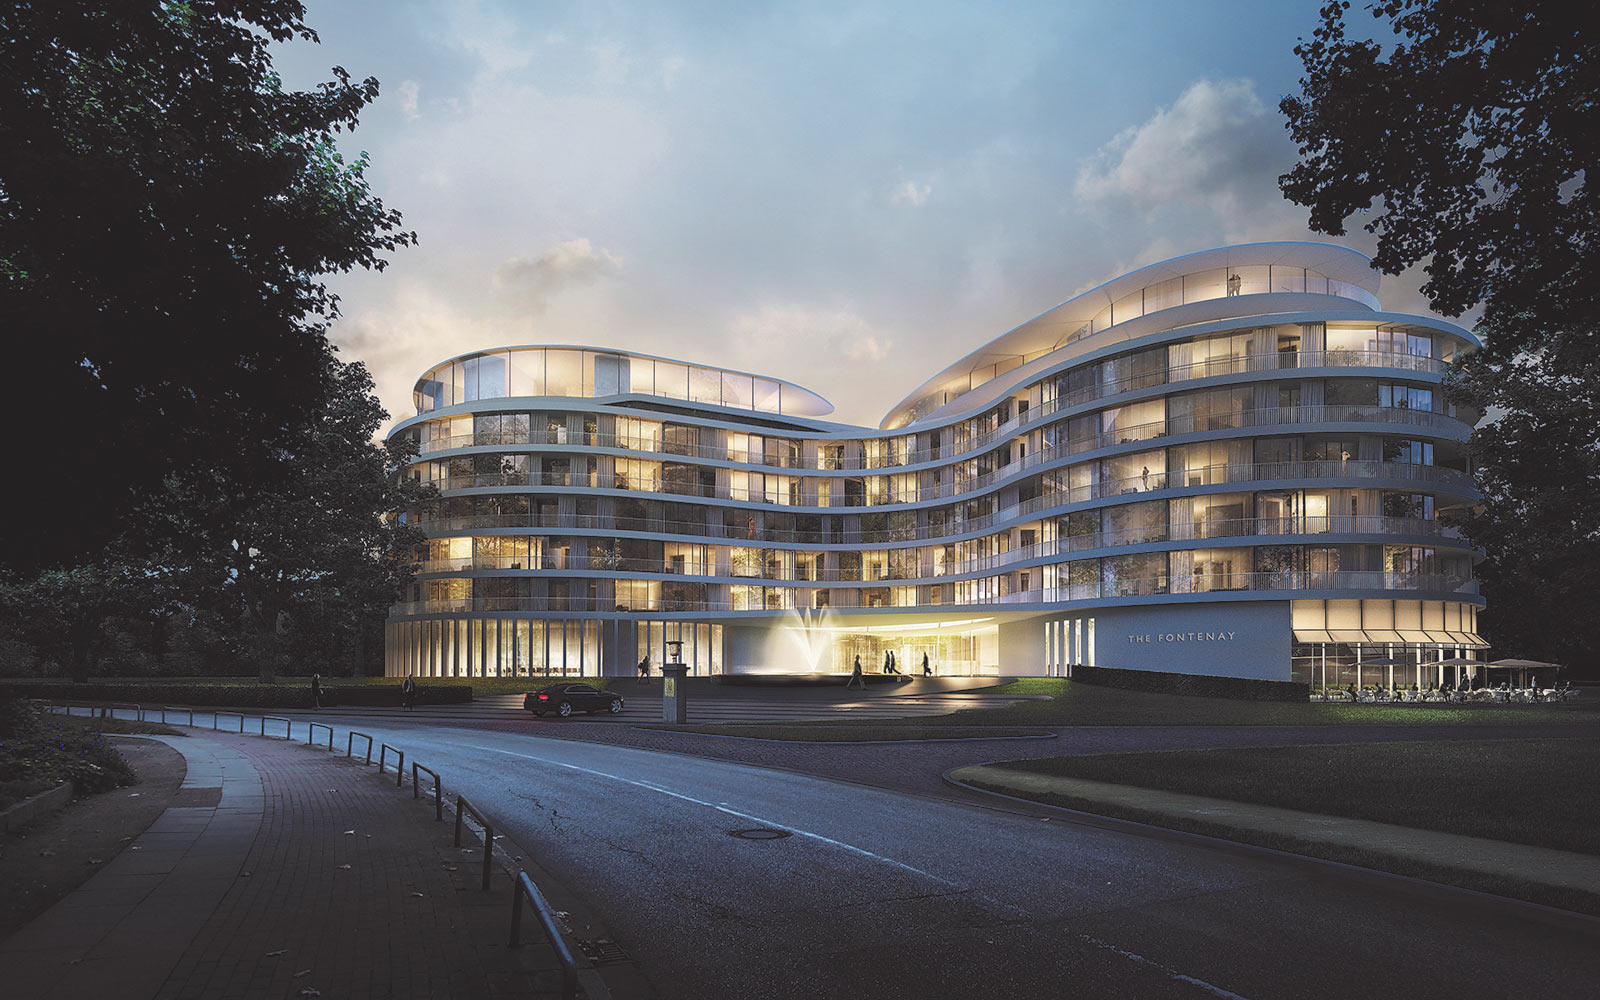 Evening rendering of The Fontenay in Hamburg